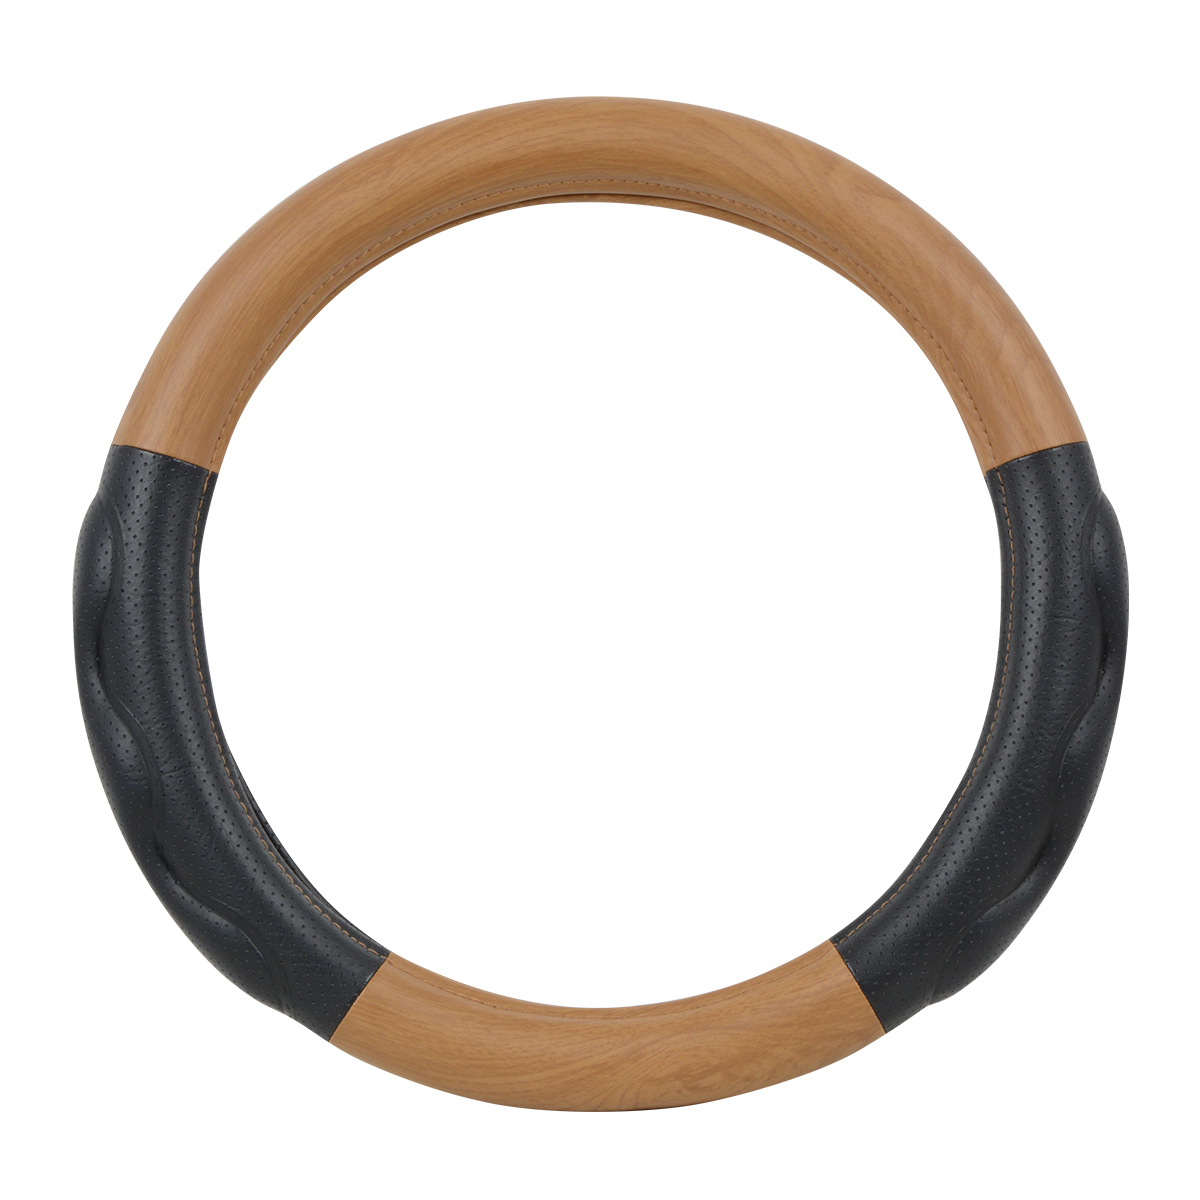 "54058 Heavy Duty 18"" Steering Wheel Cover in Deluxe+ Matte Natural Wood"